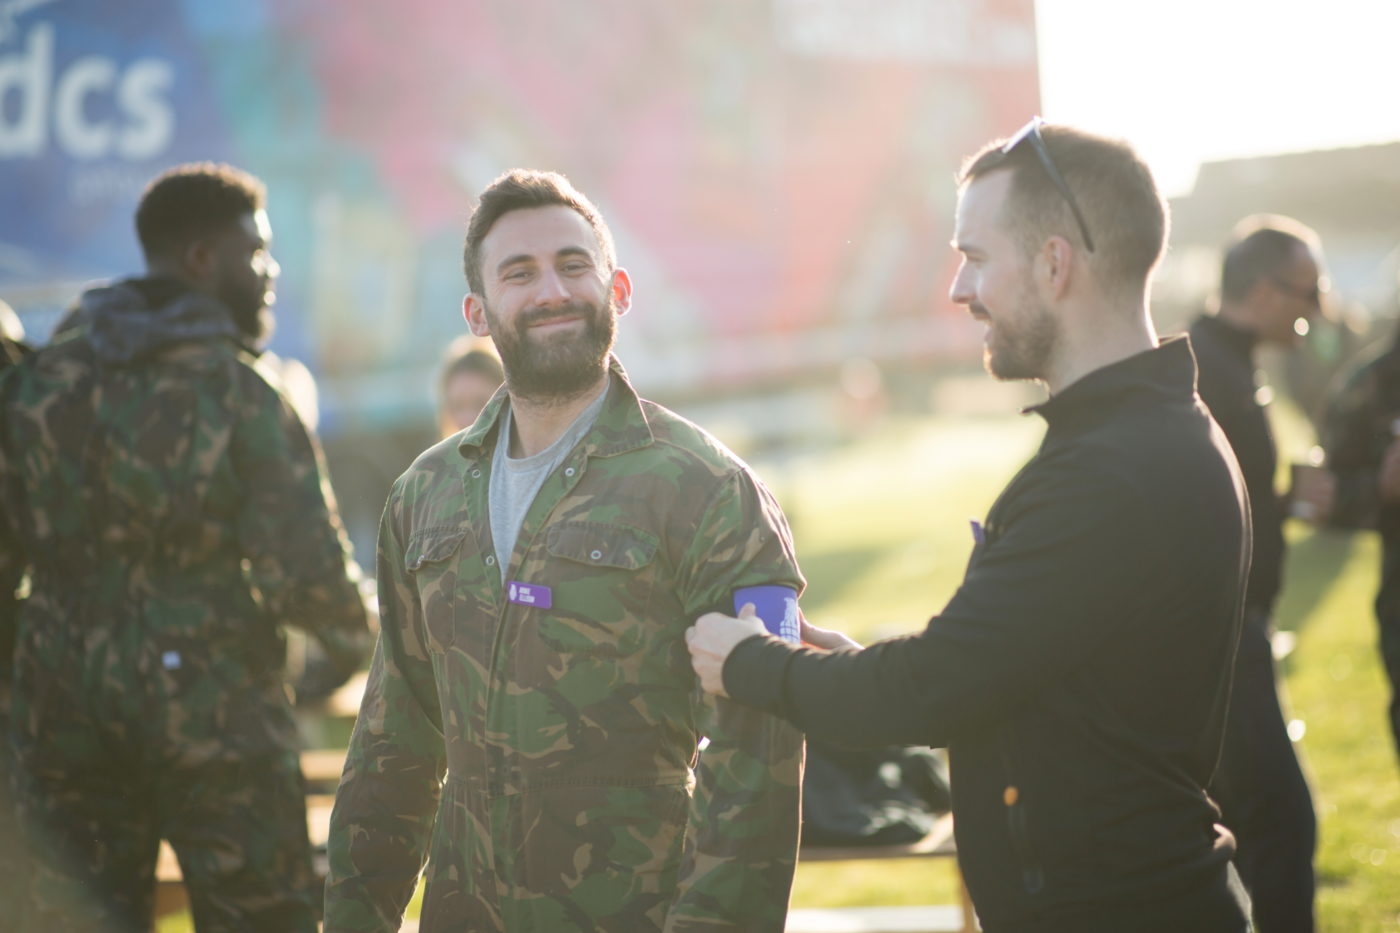 A man helps another man put on a military-style armband signifying his team colours for an activity day. Both men are smiling.